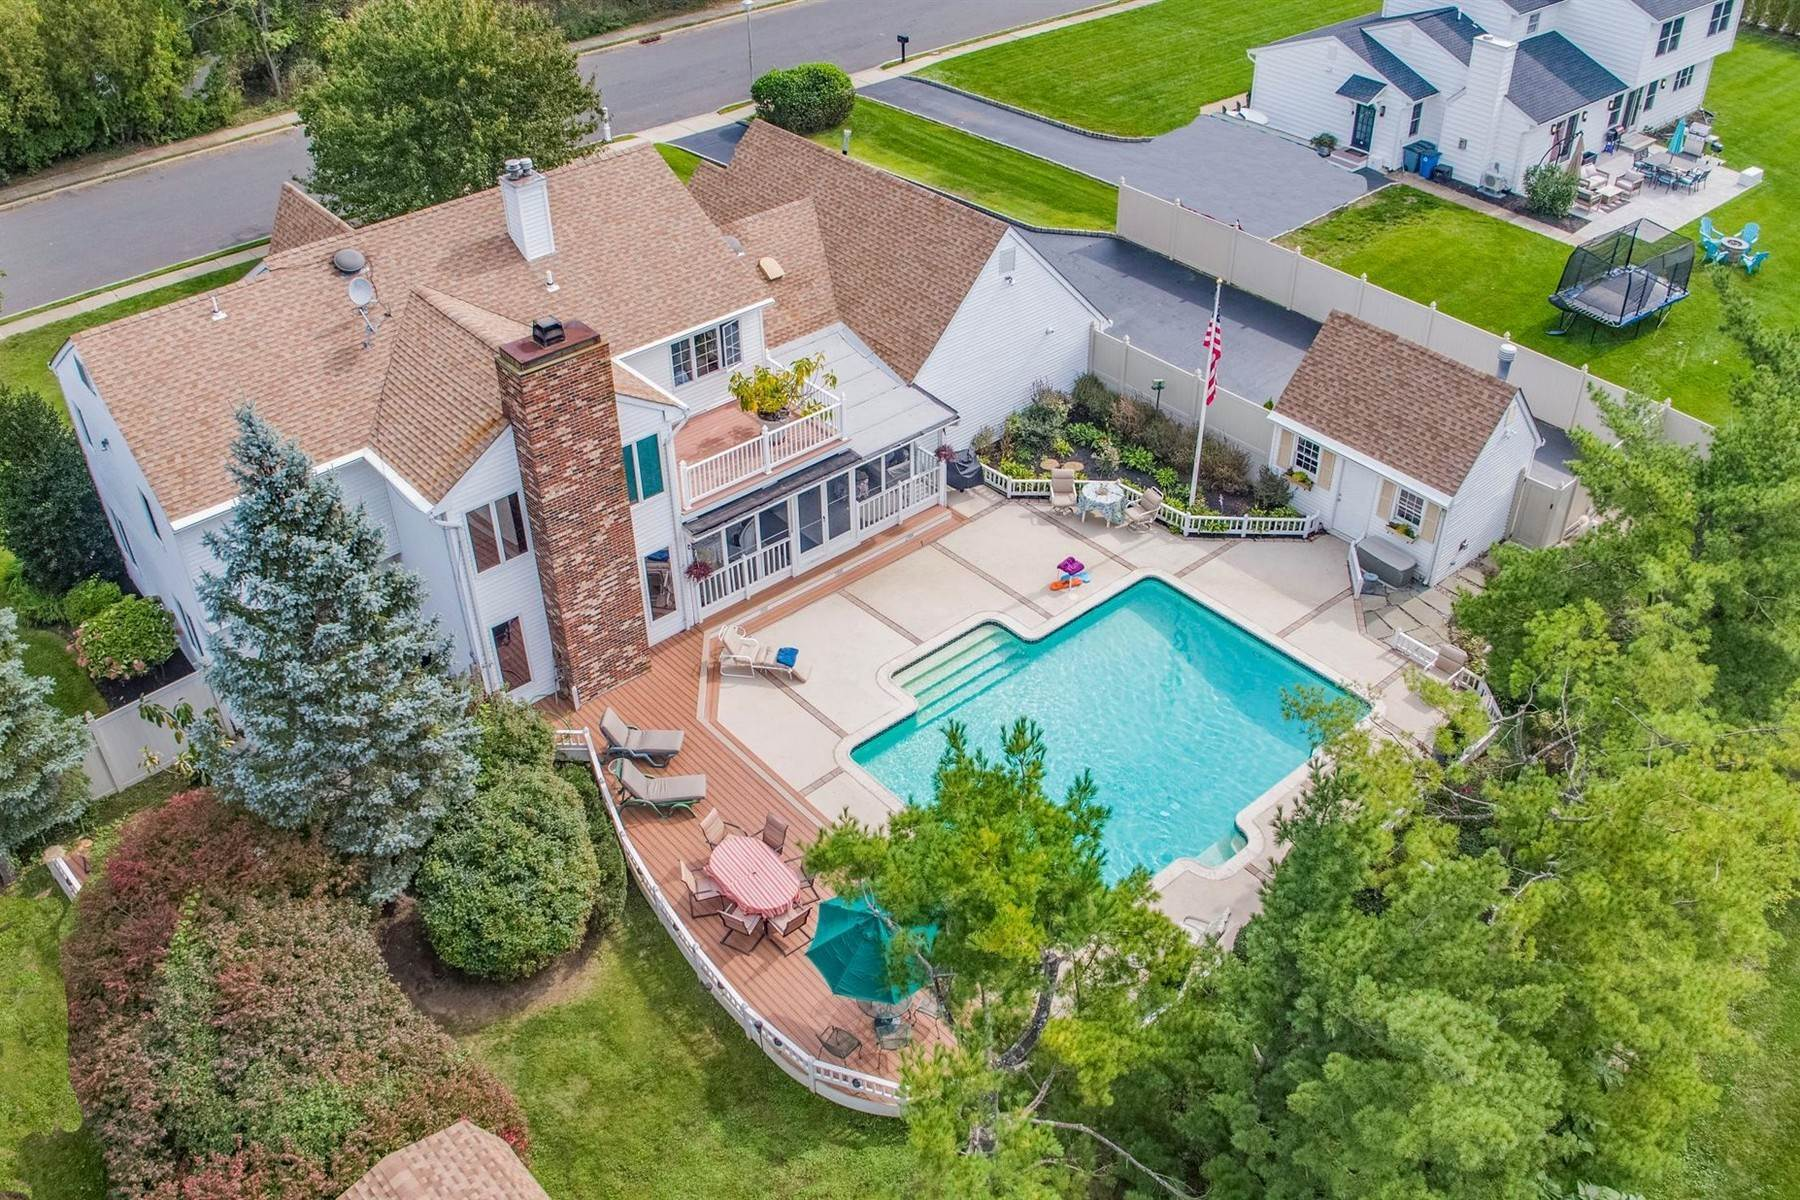 40. Single Family Homes for Sale at Elegance Meets Edgy Infused with Exceptional Quality and Custom Updates 130 Lippincott Road Little Silver, New Jersey 07739 United States